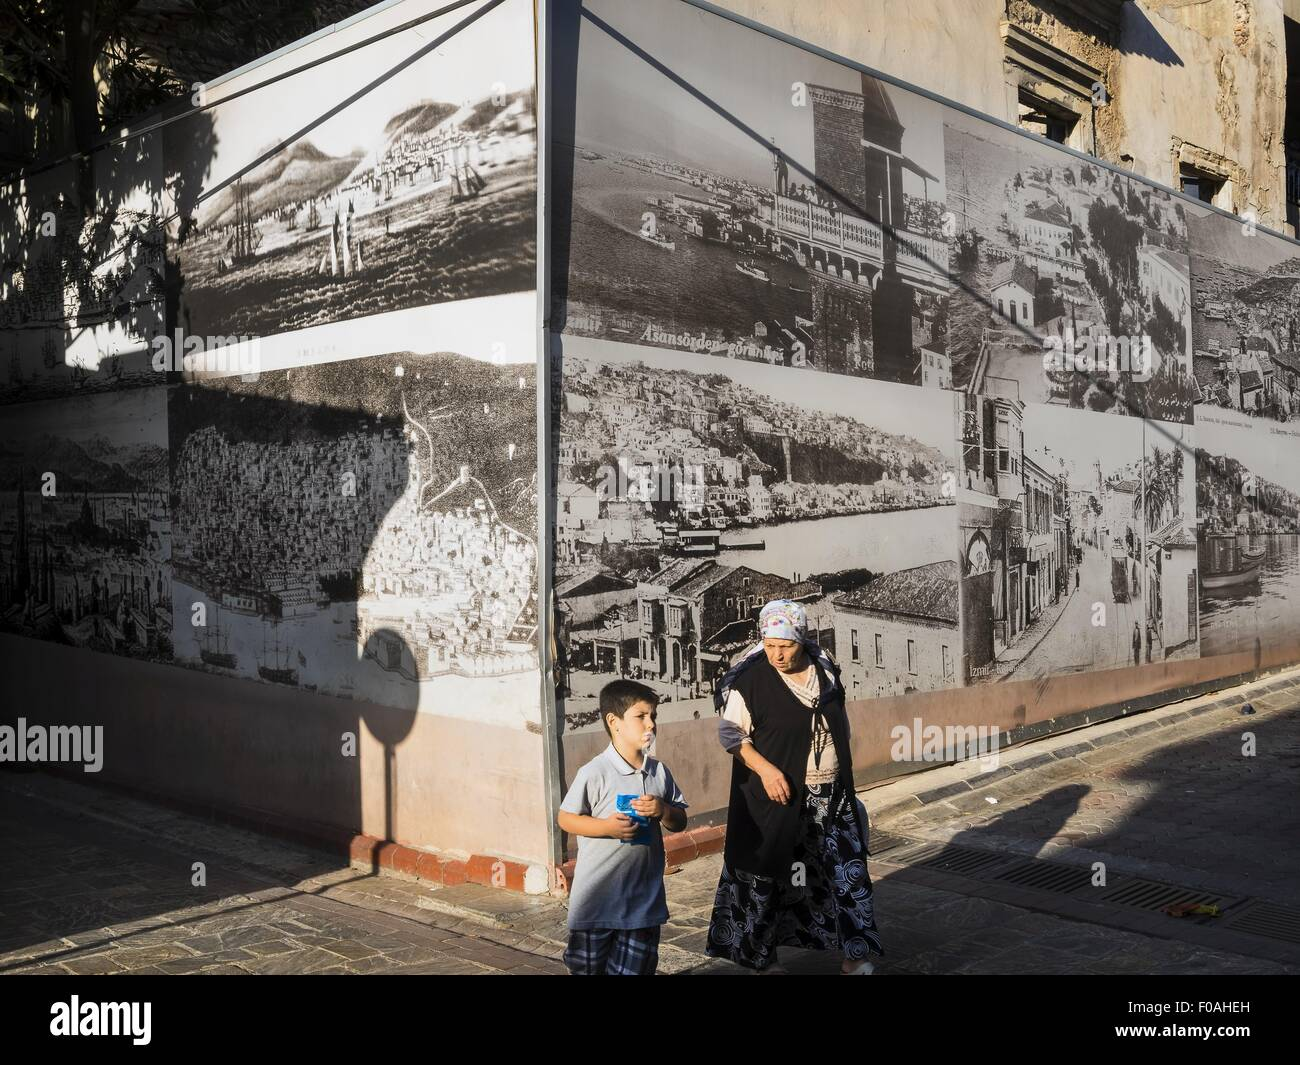 Woman and child walking in front of historical photos on Asansor in Aegean Region, Turkey - Stock Image